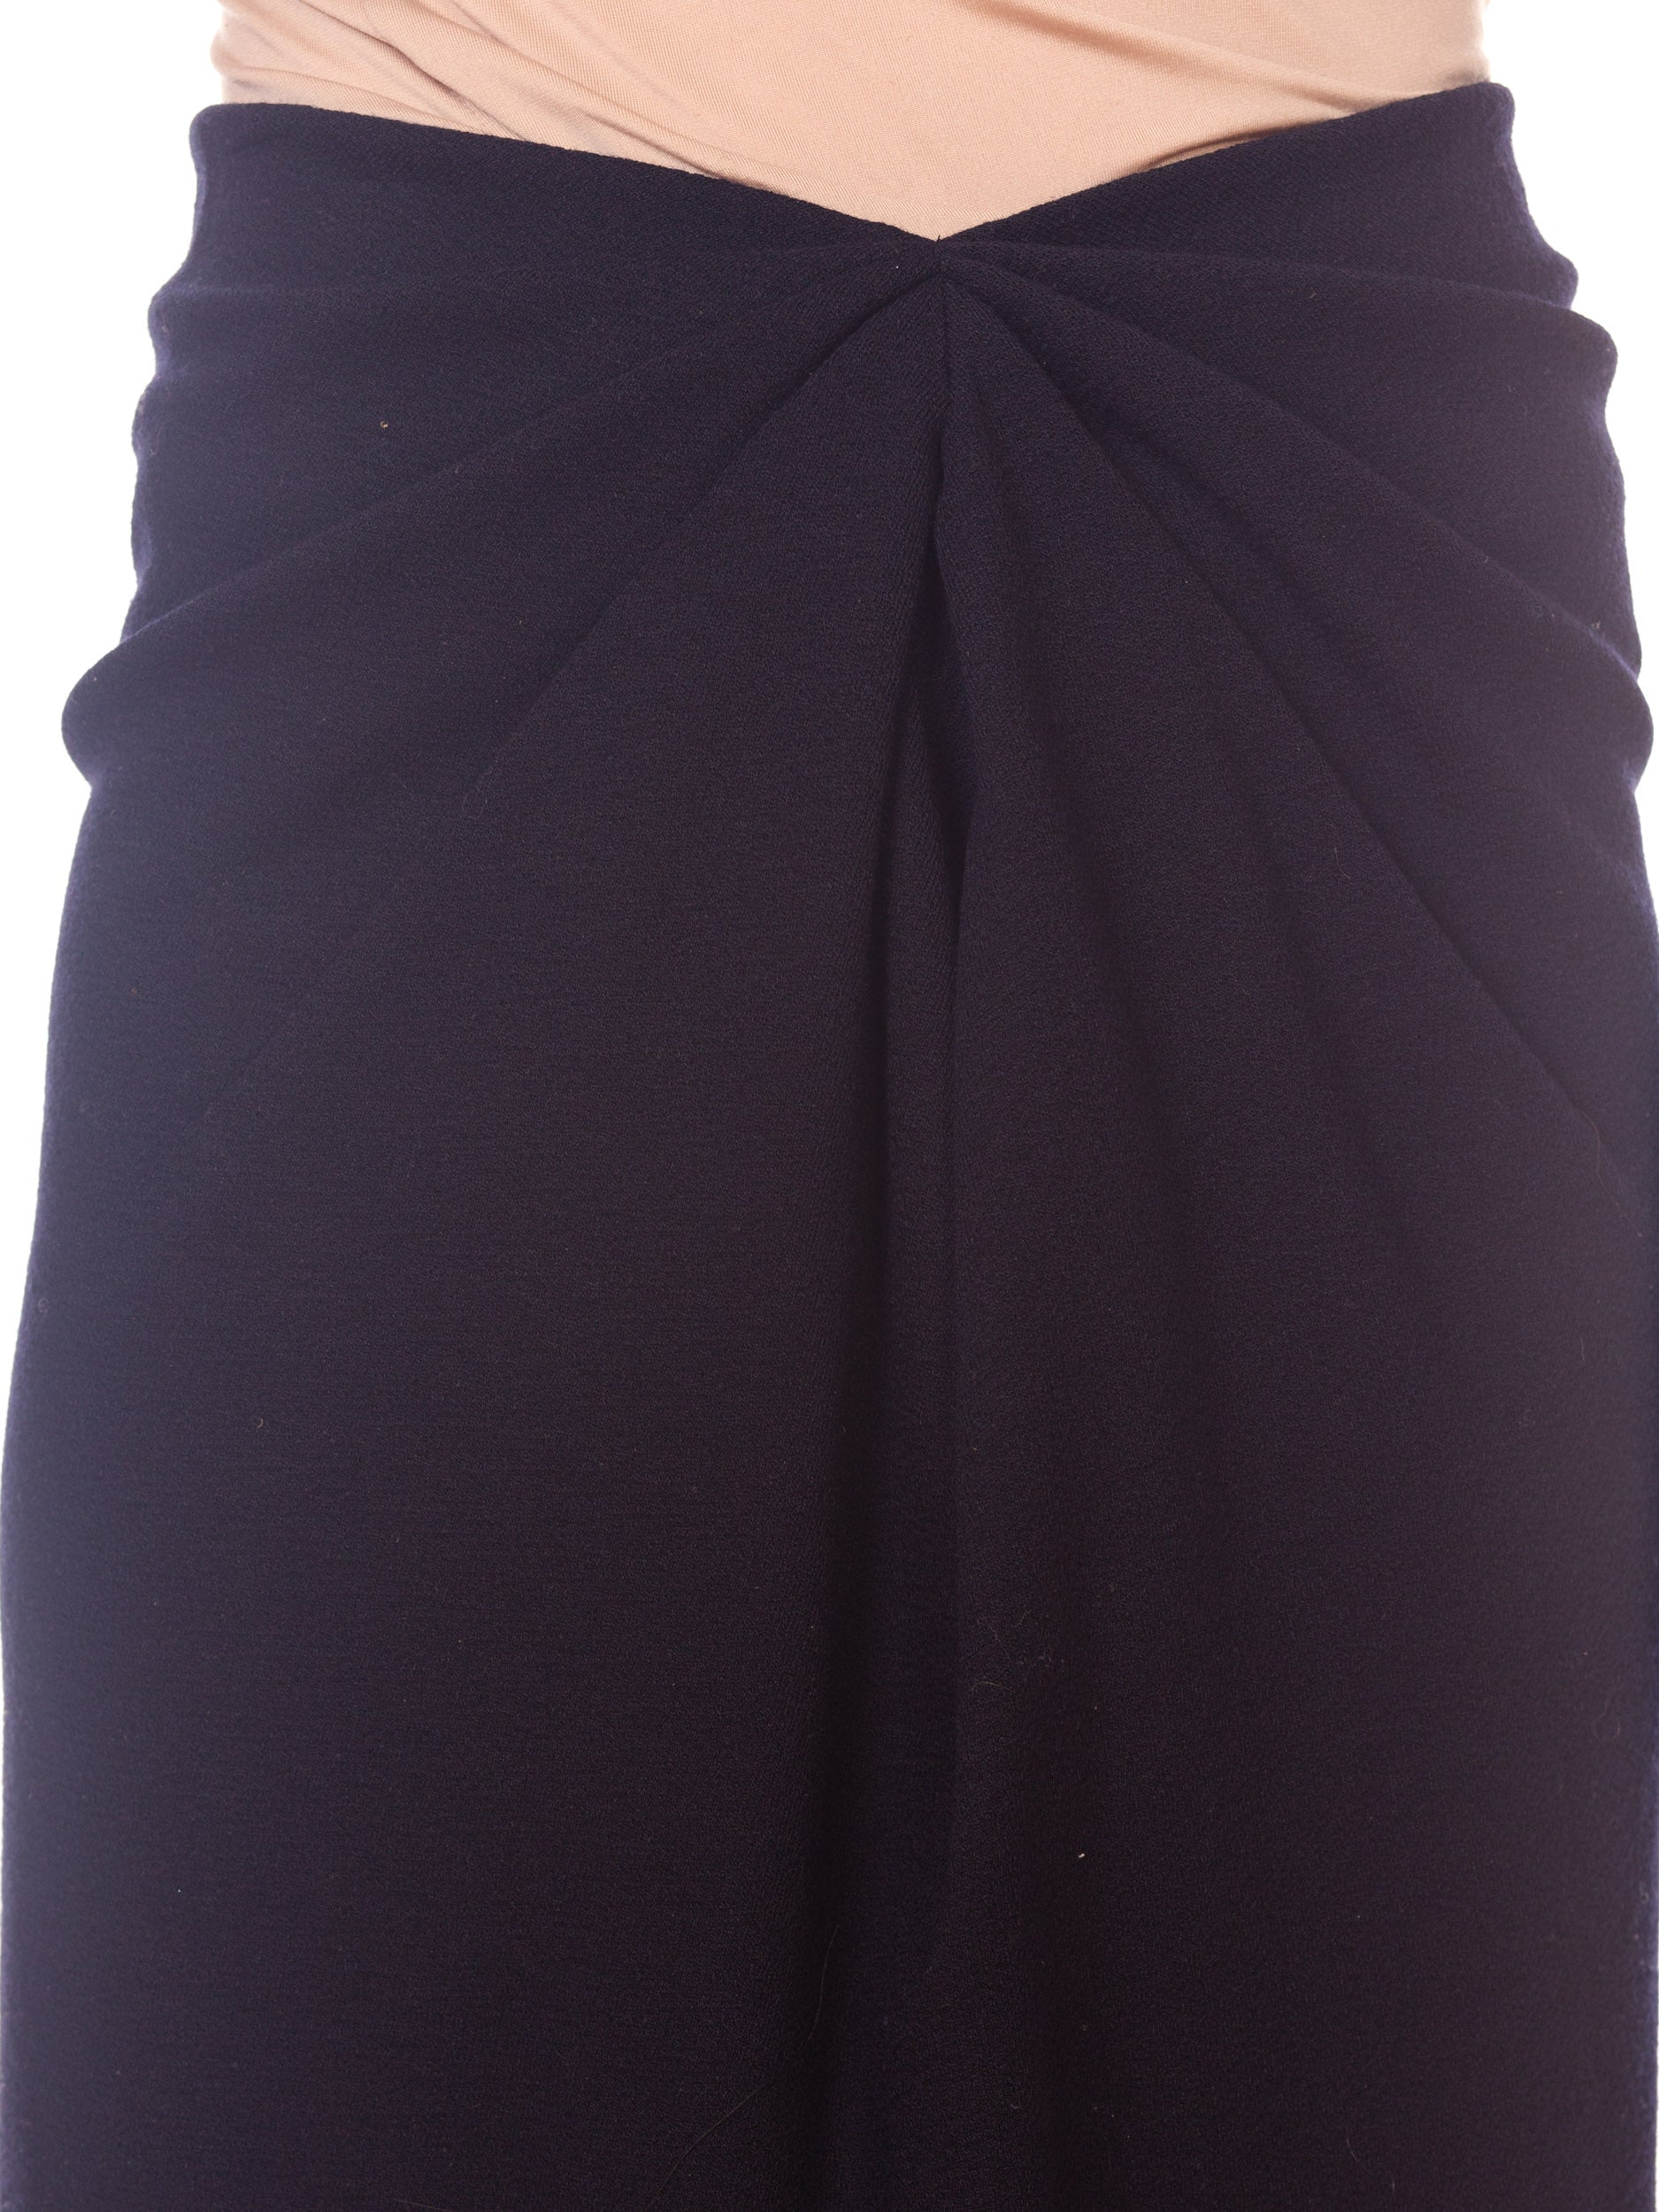 1980S DONNA KARAN Black Wool Jersey 40S Film Noir Style Skirt With Elastic Waist